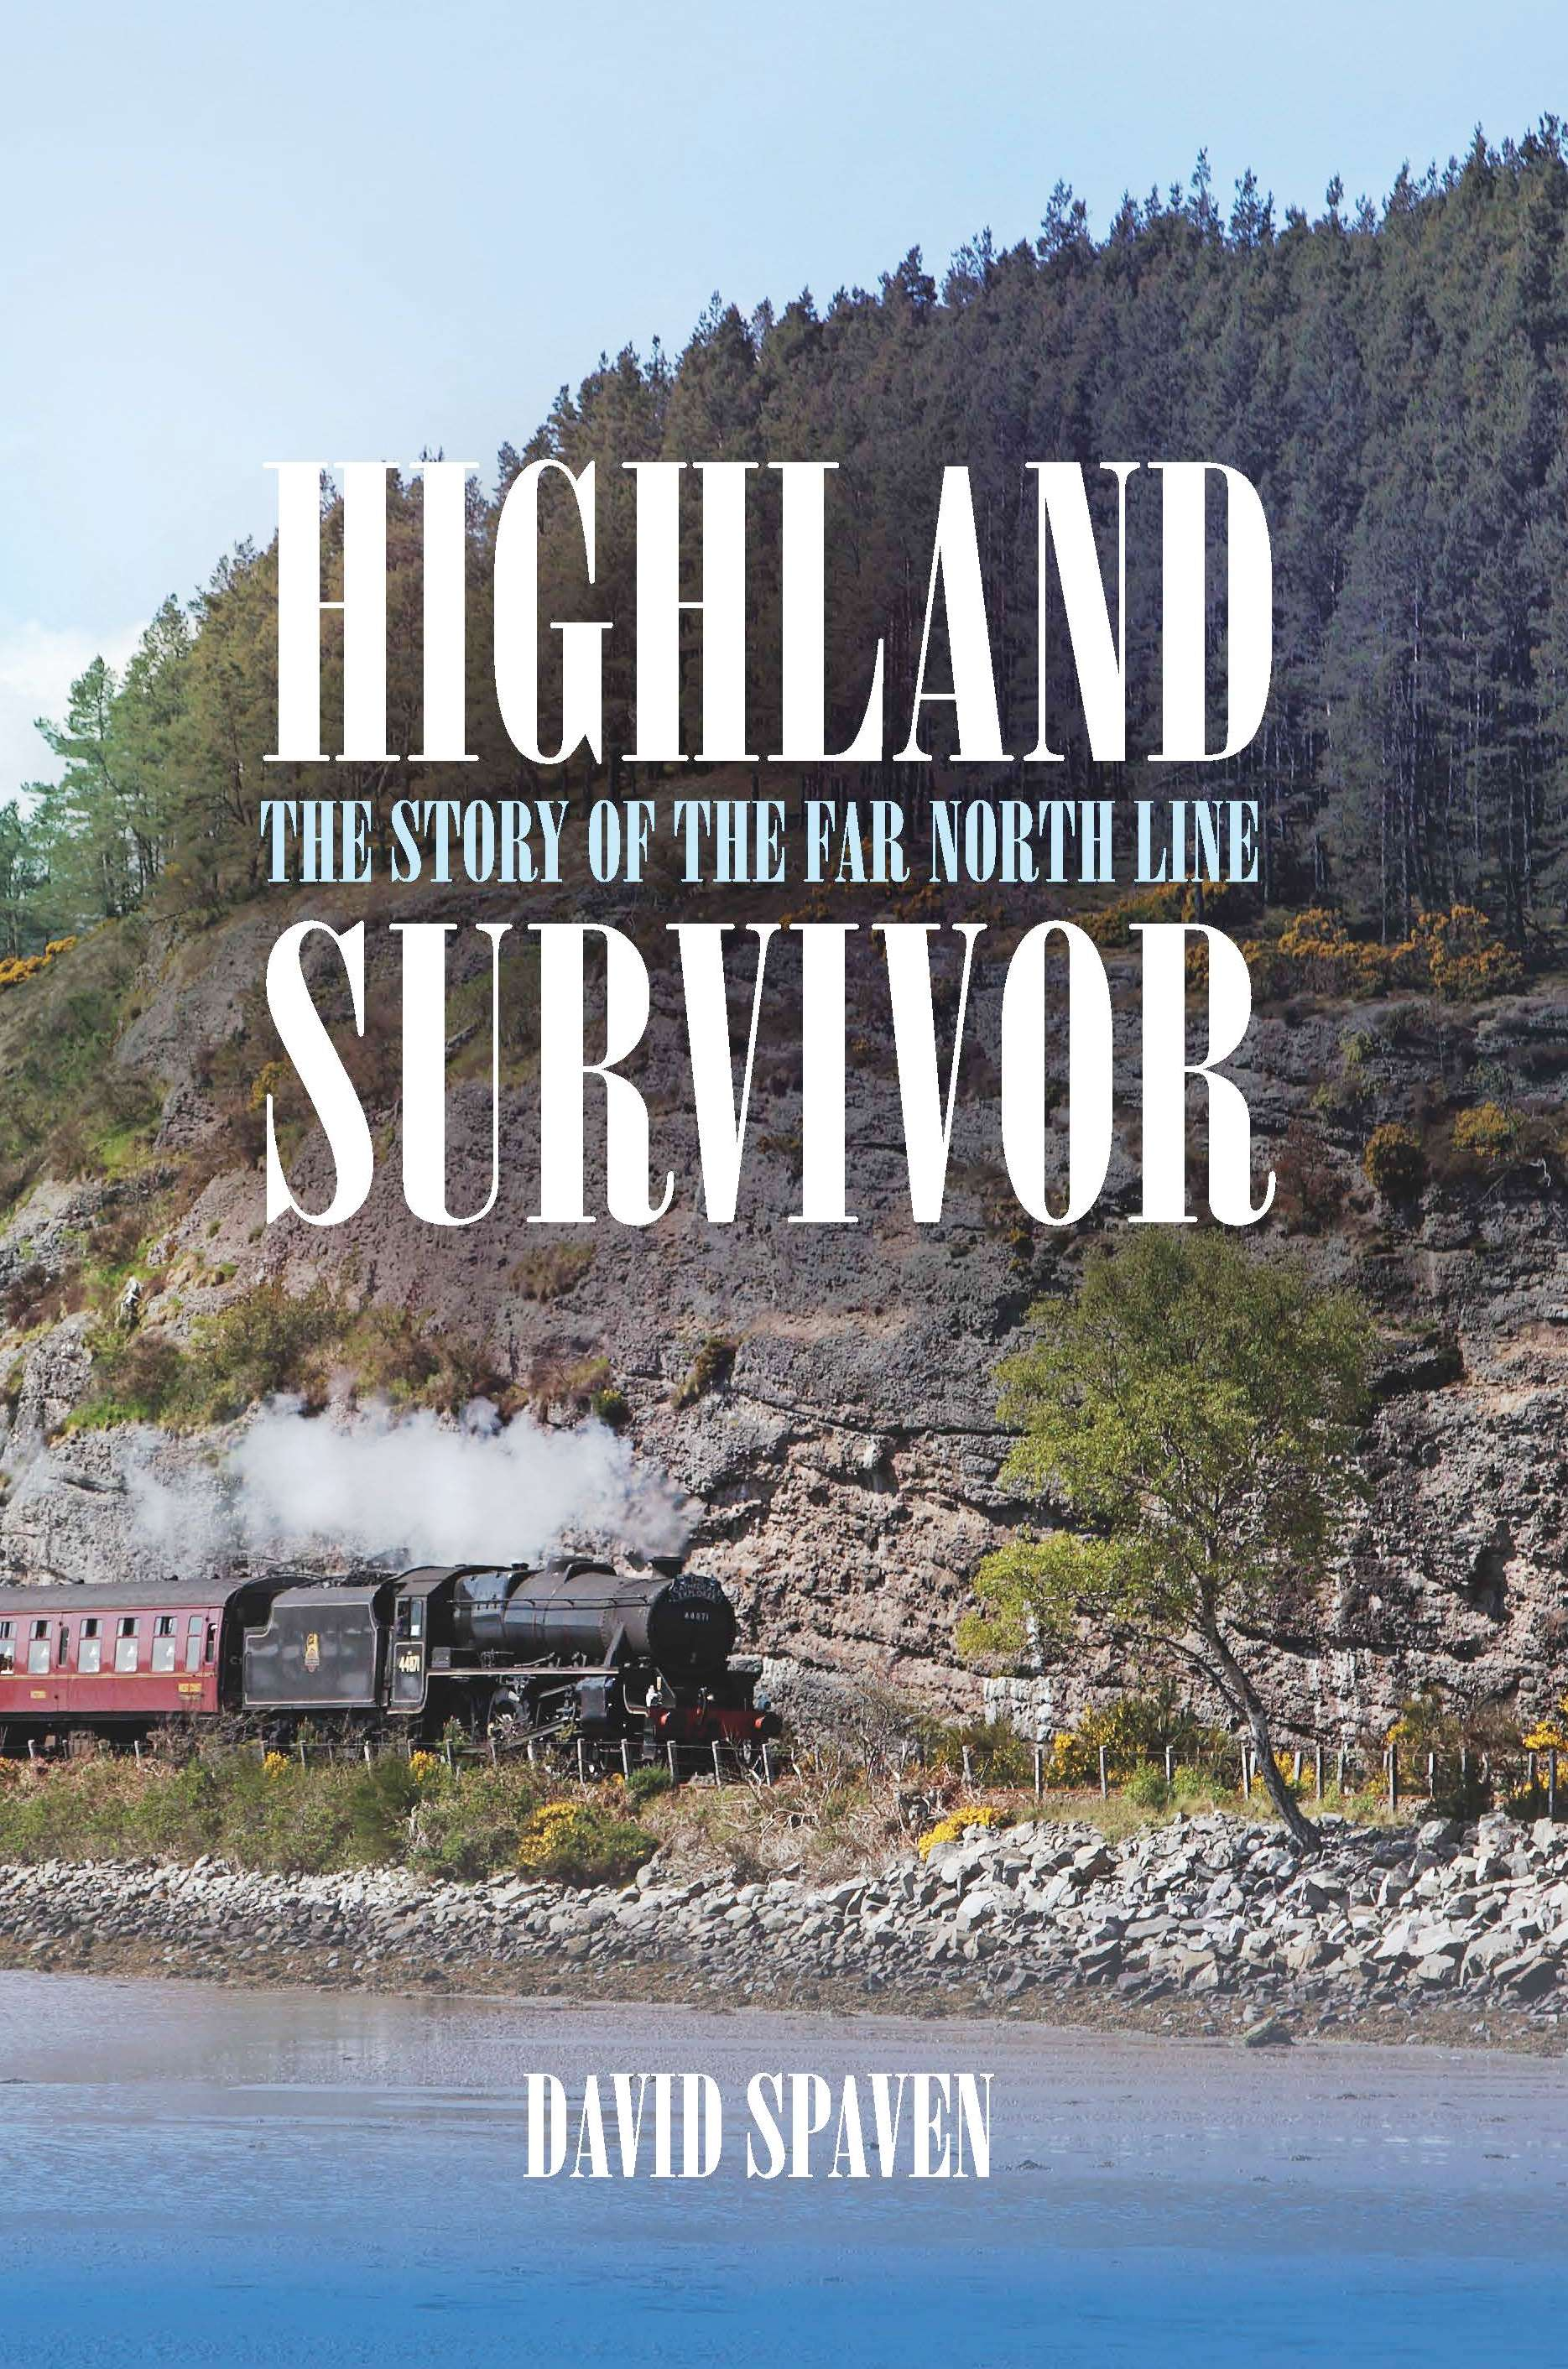 Highland Survivor: The Story of the Far North Line